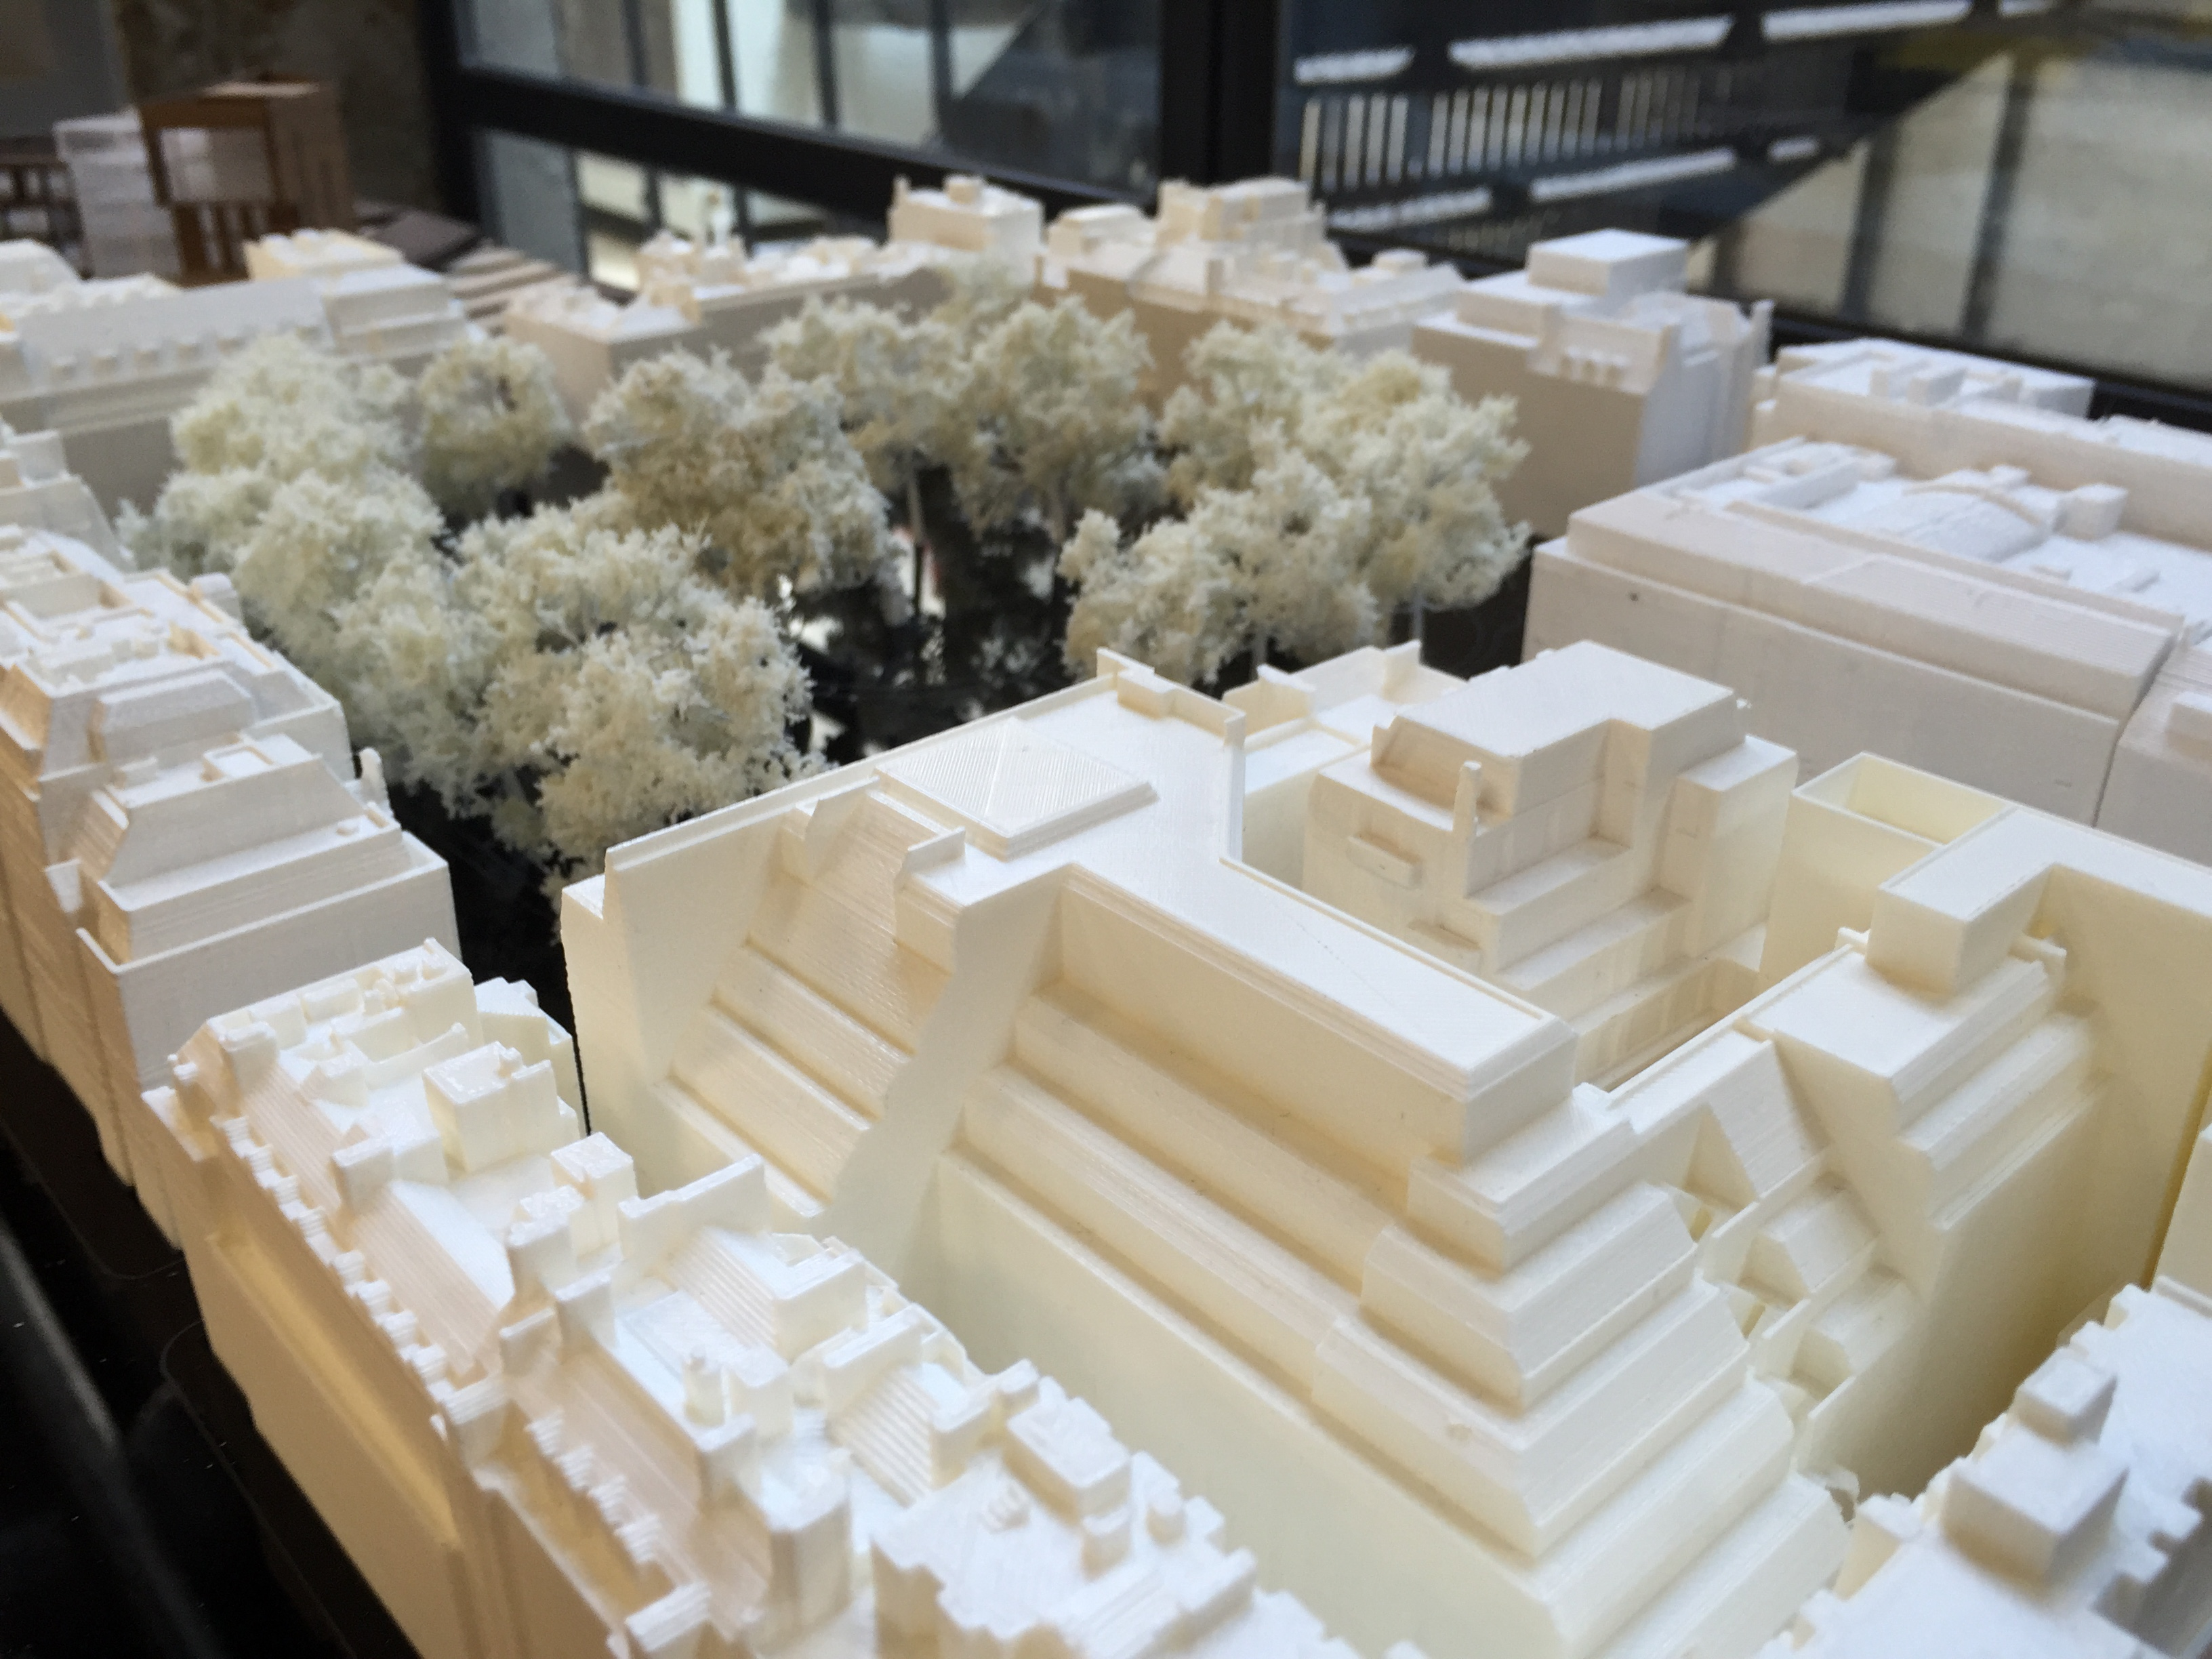 Make's 3D printed architectural model image